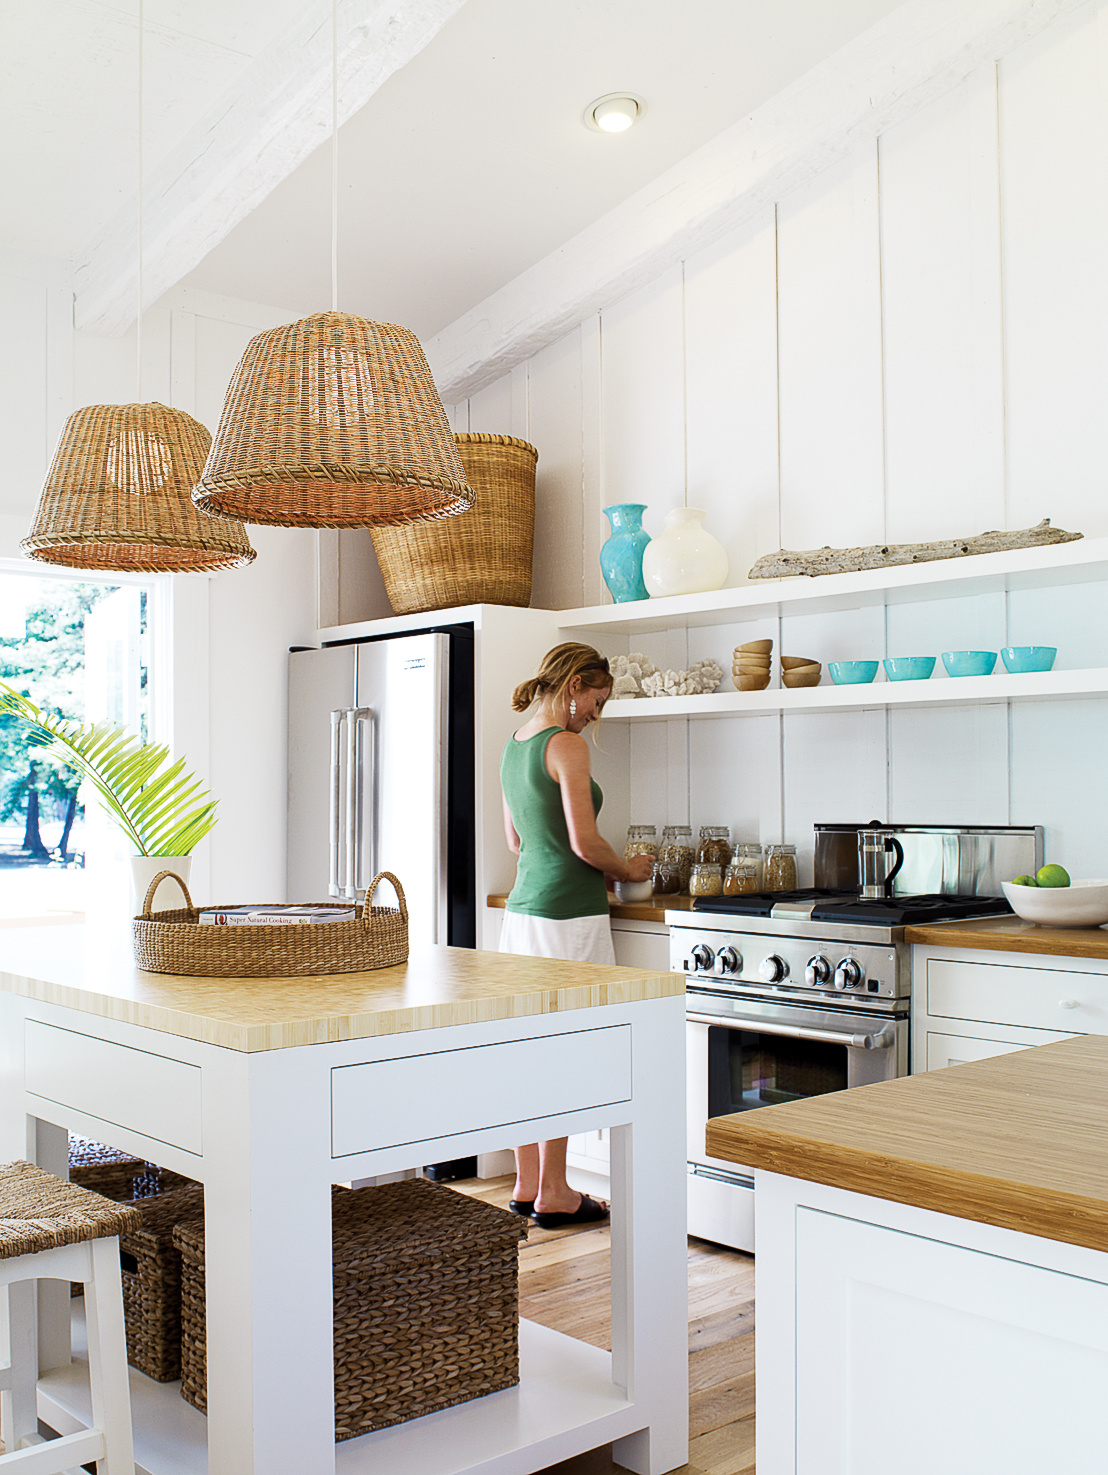 63 Kitchen Design Ideas - Sunset Magazine